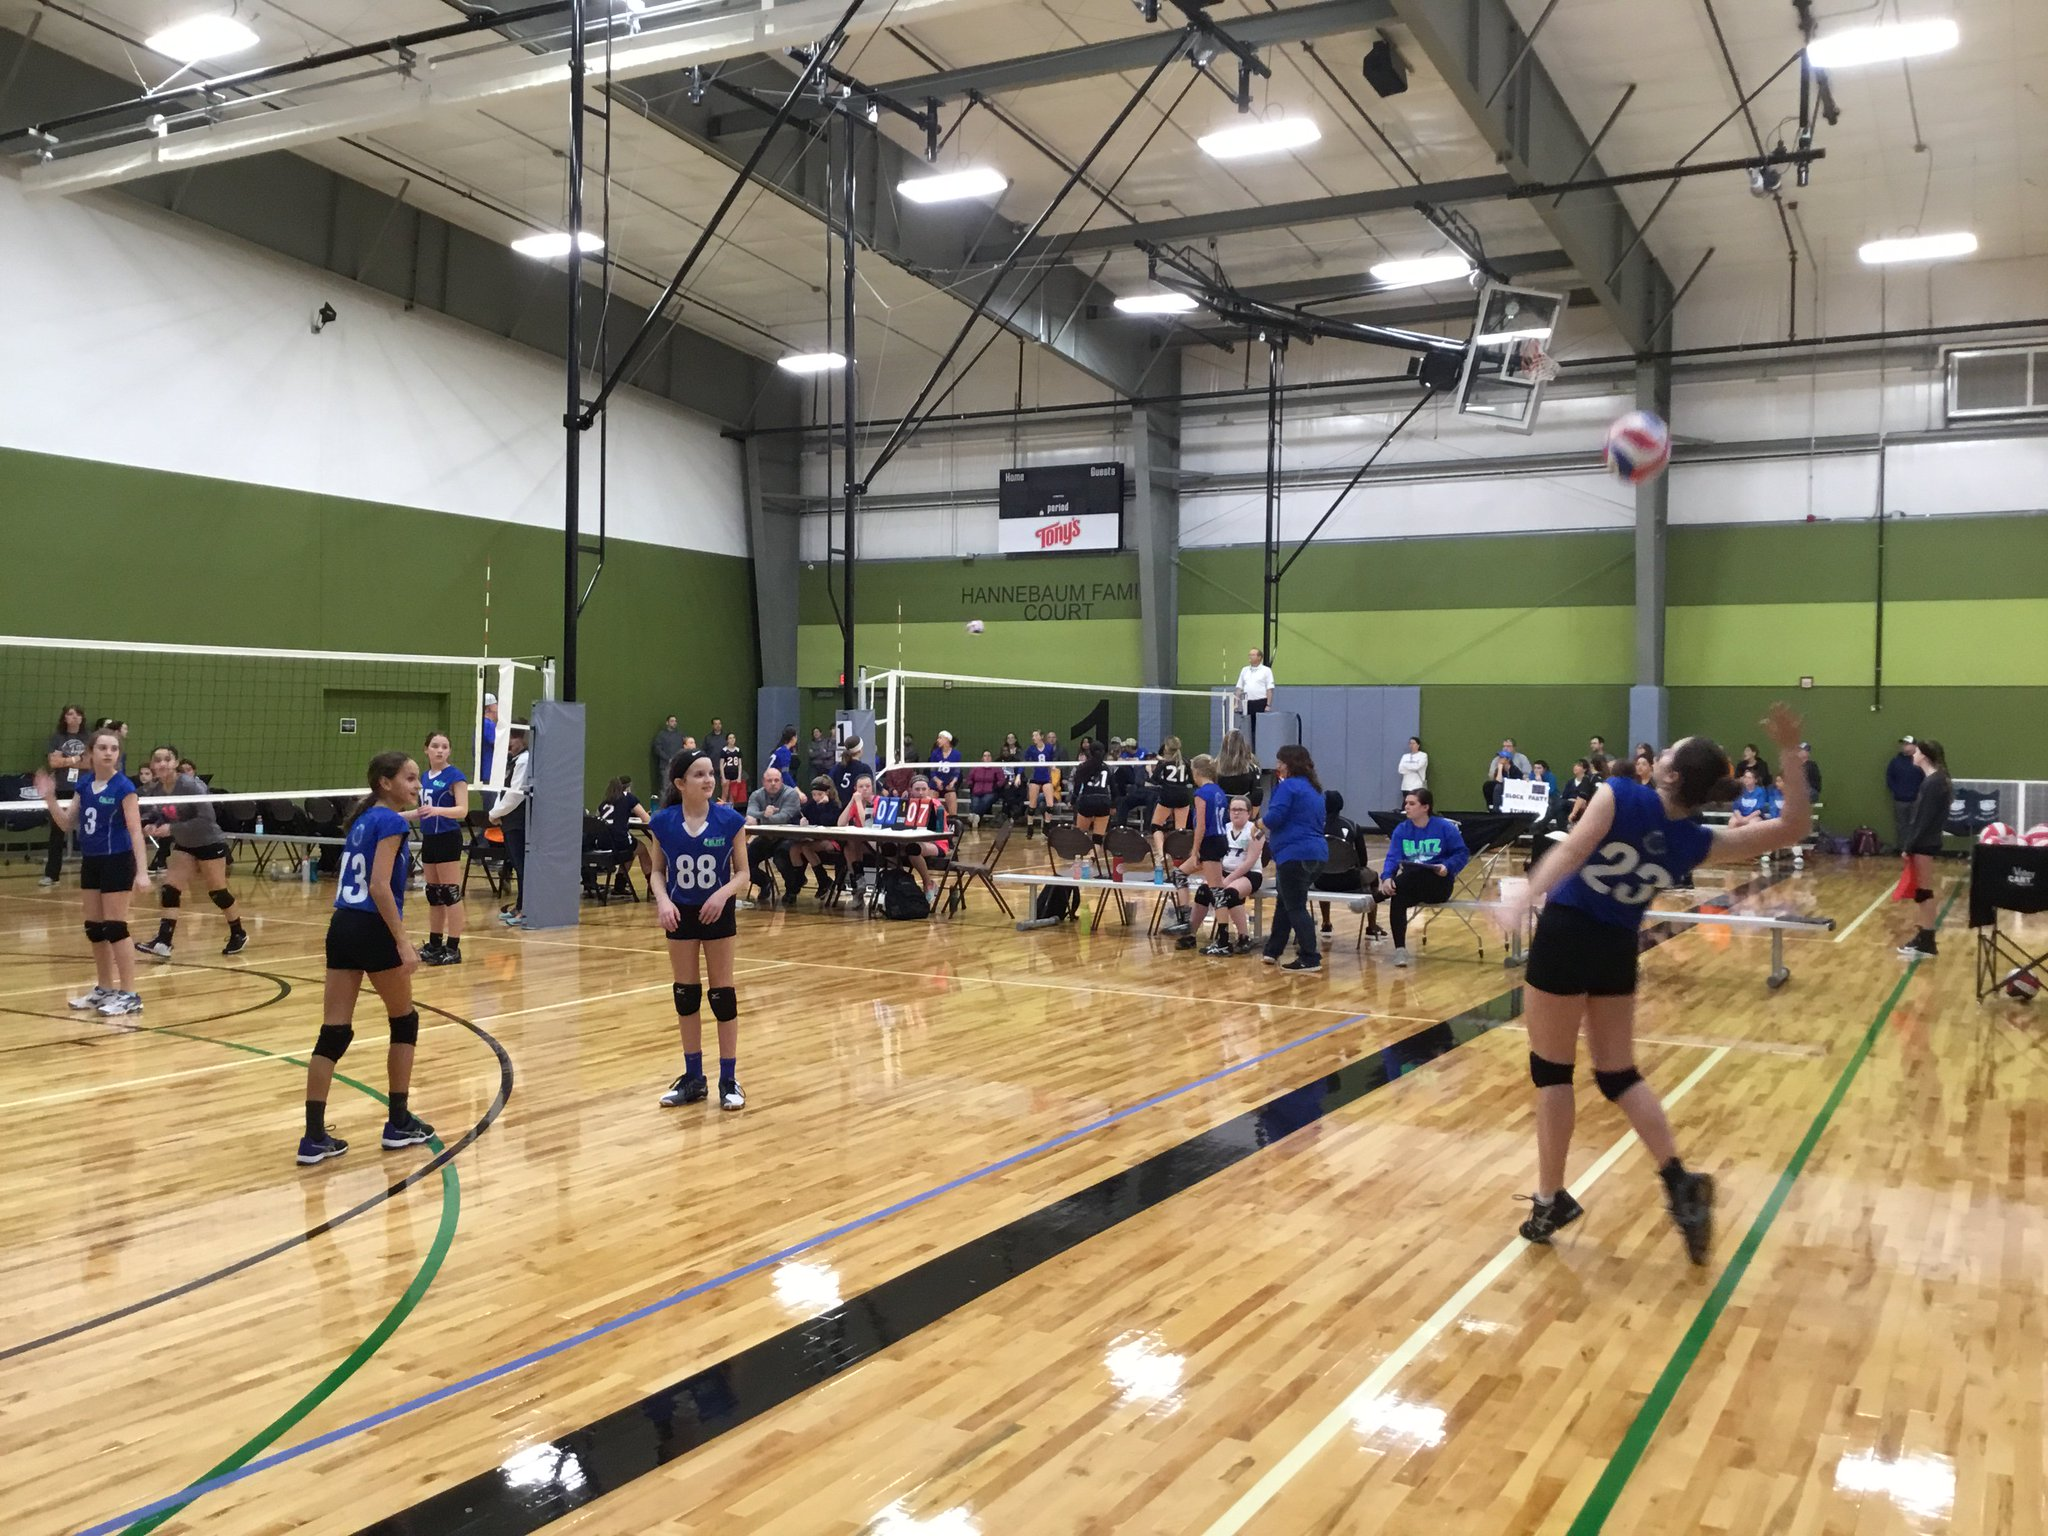 HOA Volleyball March Madness Tournament